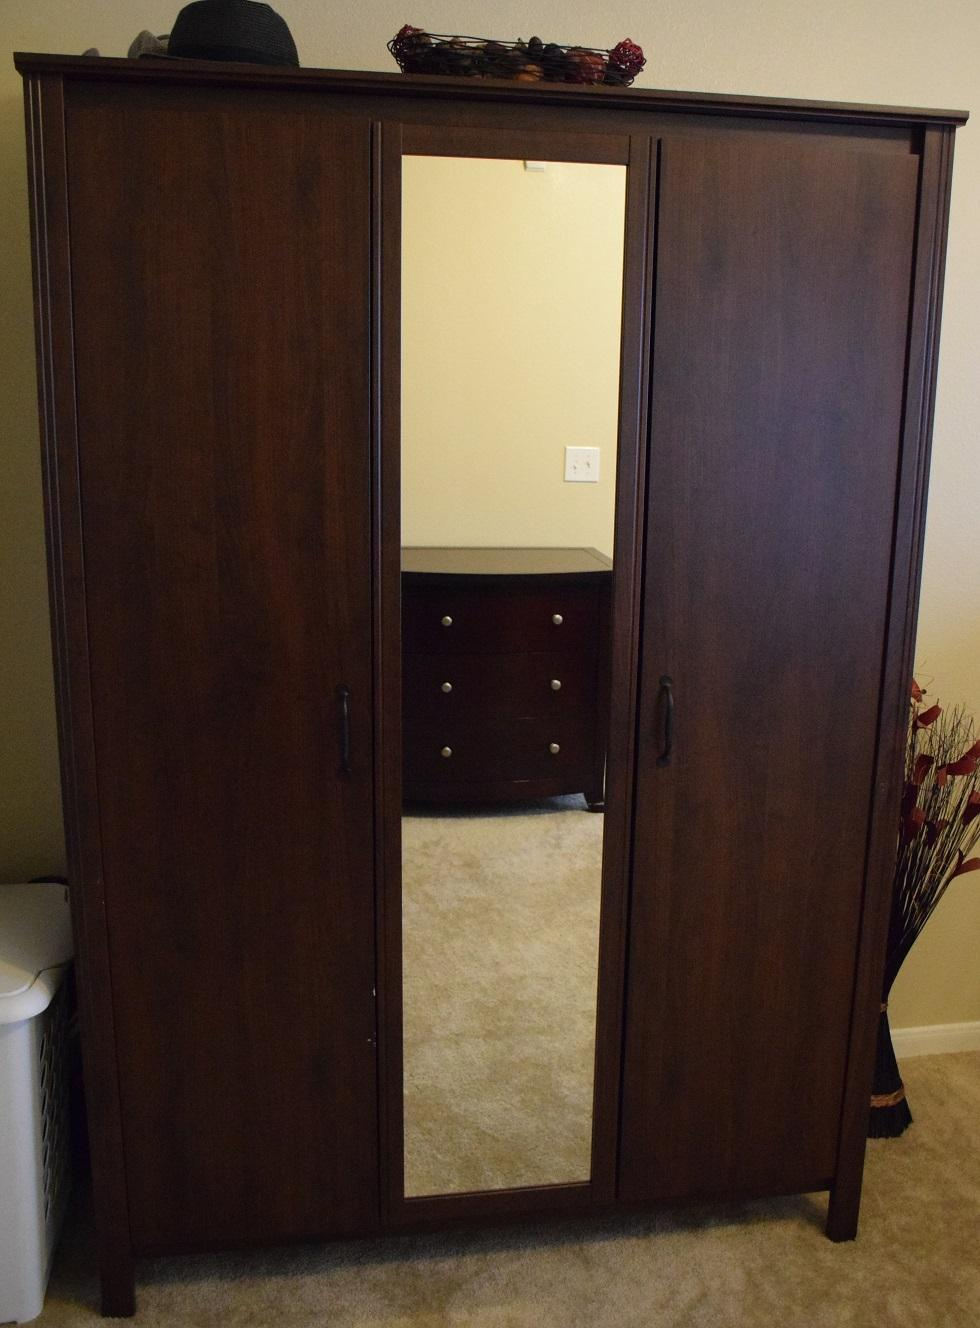 Find More Ikea Brusali Armoire Brown Coffee For Sale At Up To 90